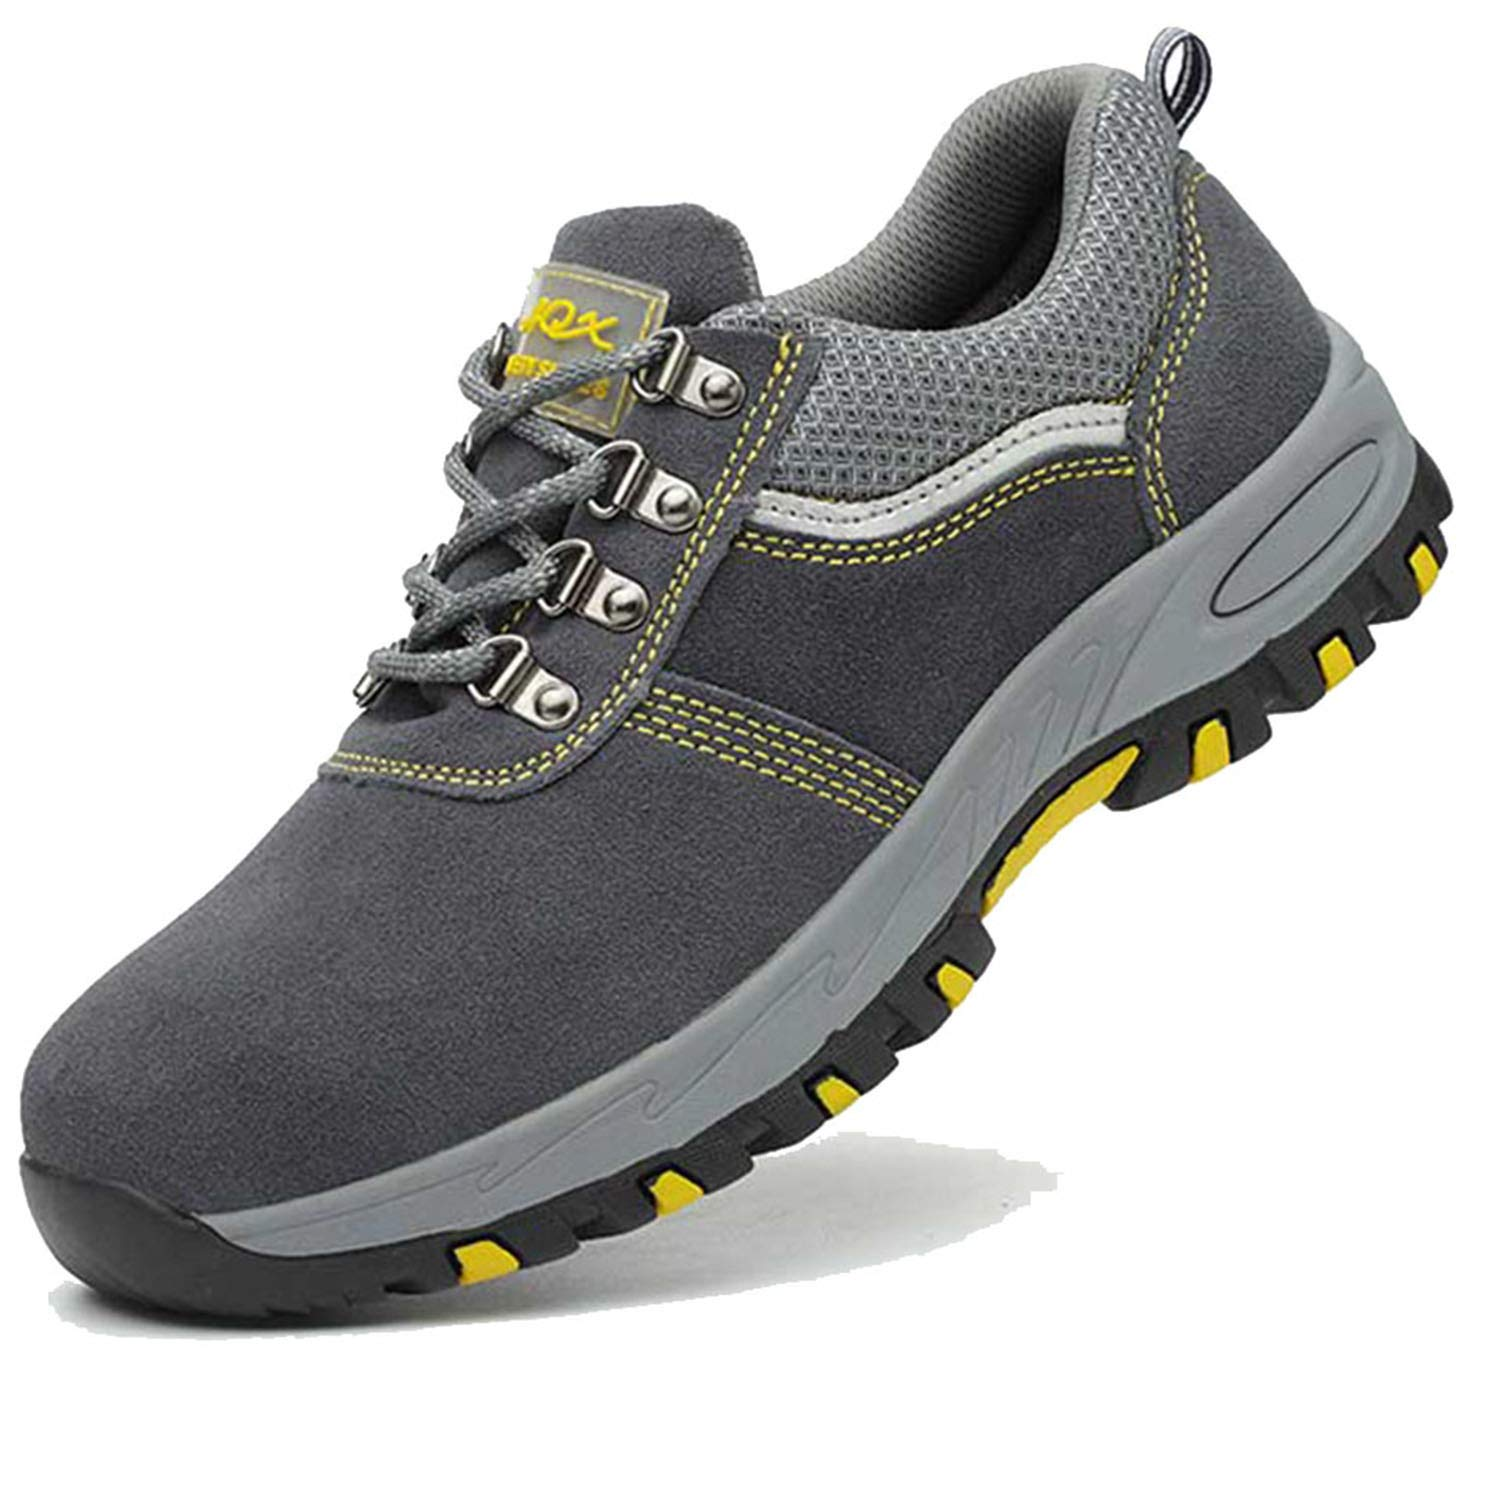 2d5f484e76919 SUADEX Steel Toe Shoes Men Women Work Safety Shoes Waterproof Lightweight  Industrial Construction Puncture Proof Shoes